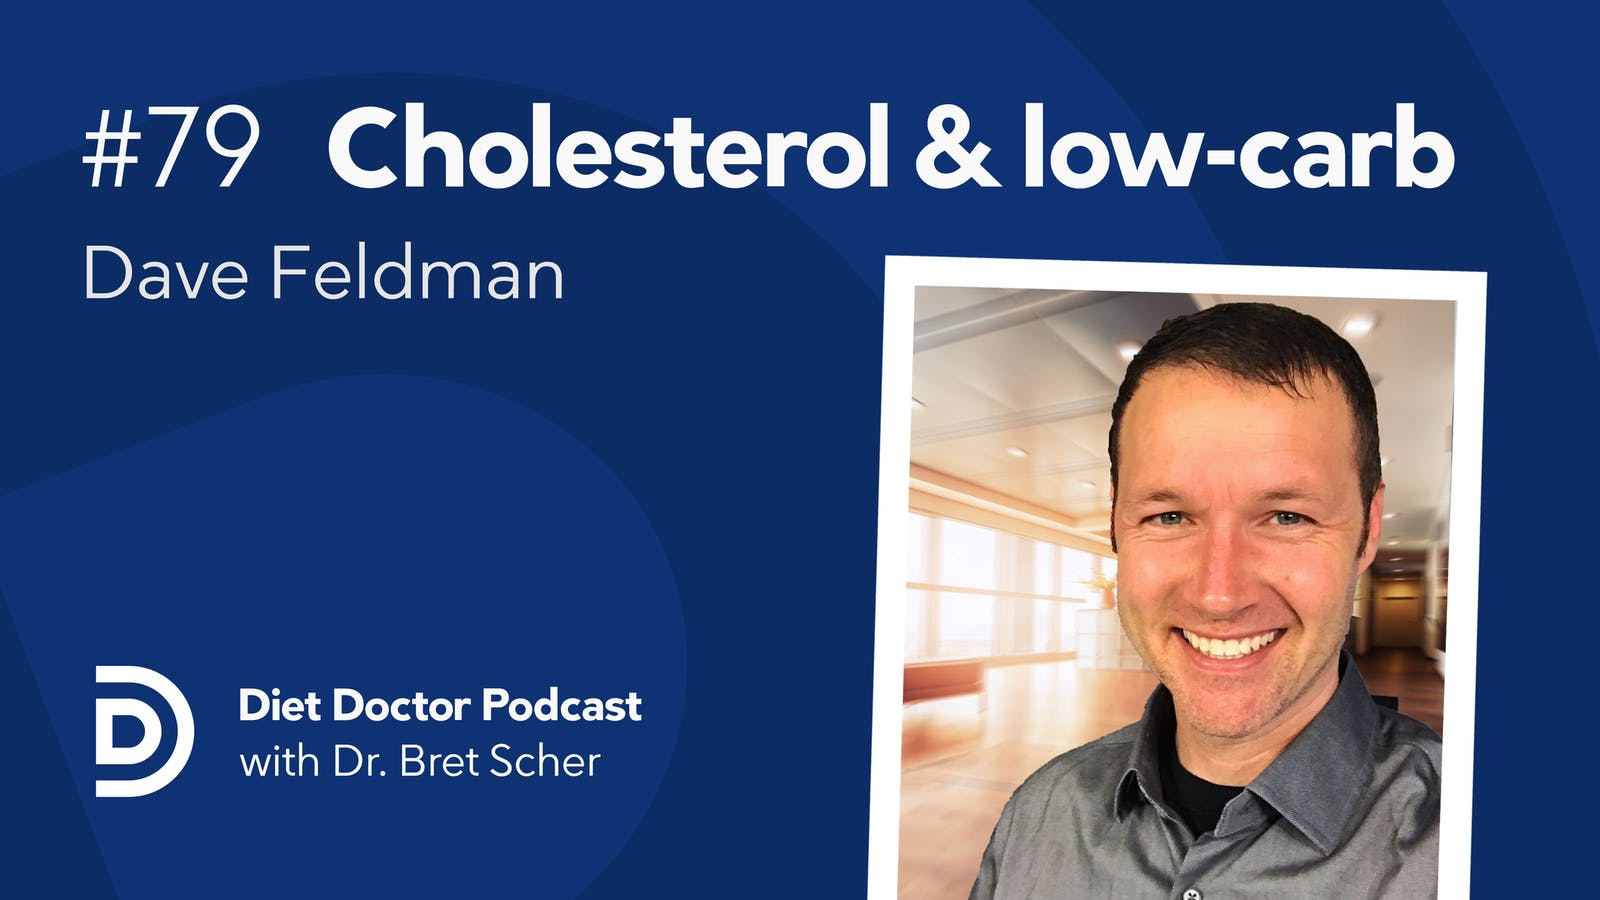 Diet Doctor Podcast #79 — High cholesterol and low-carb diets